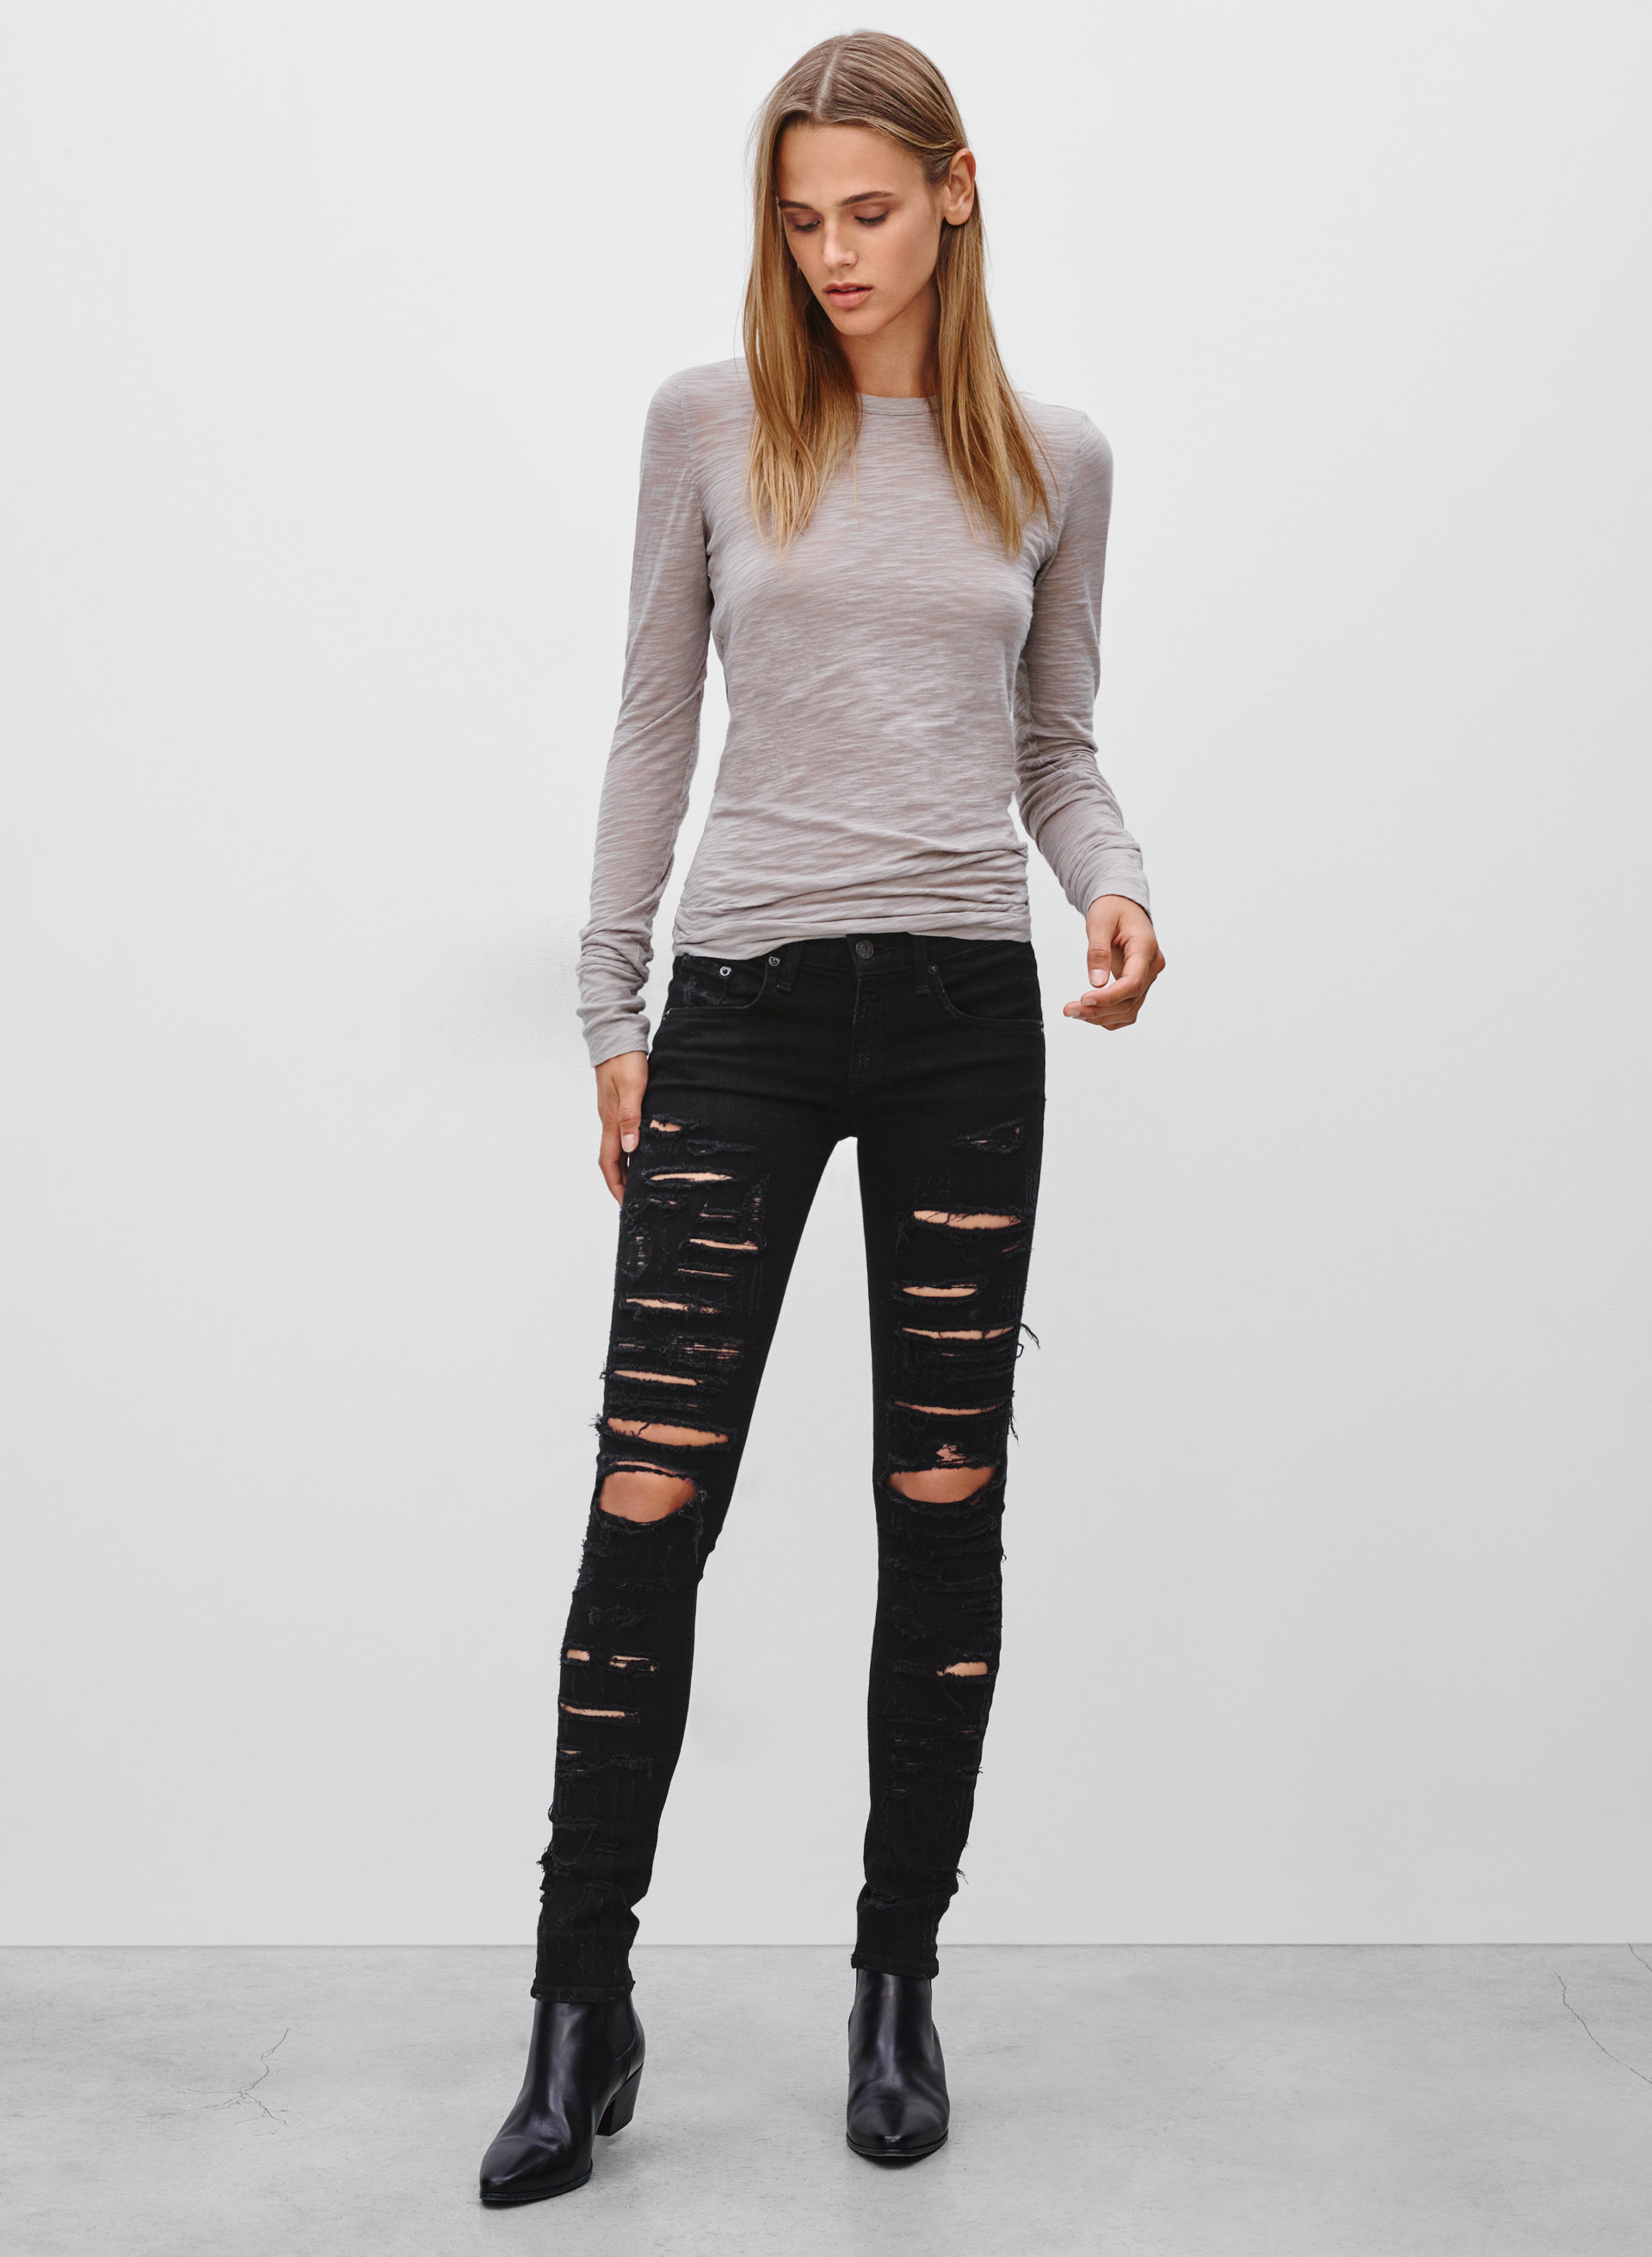 & Bone/JEAN THRASHER BLACK | Aritzia